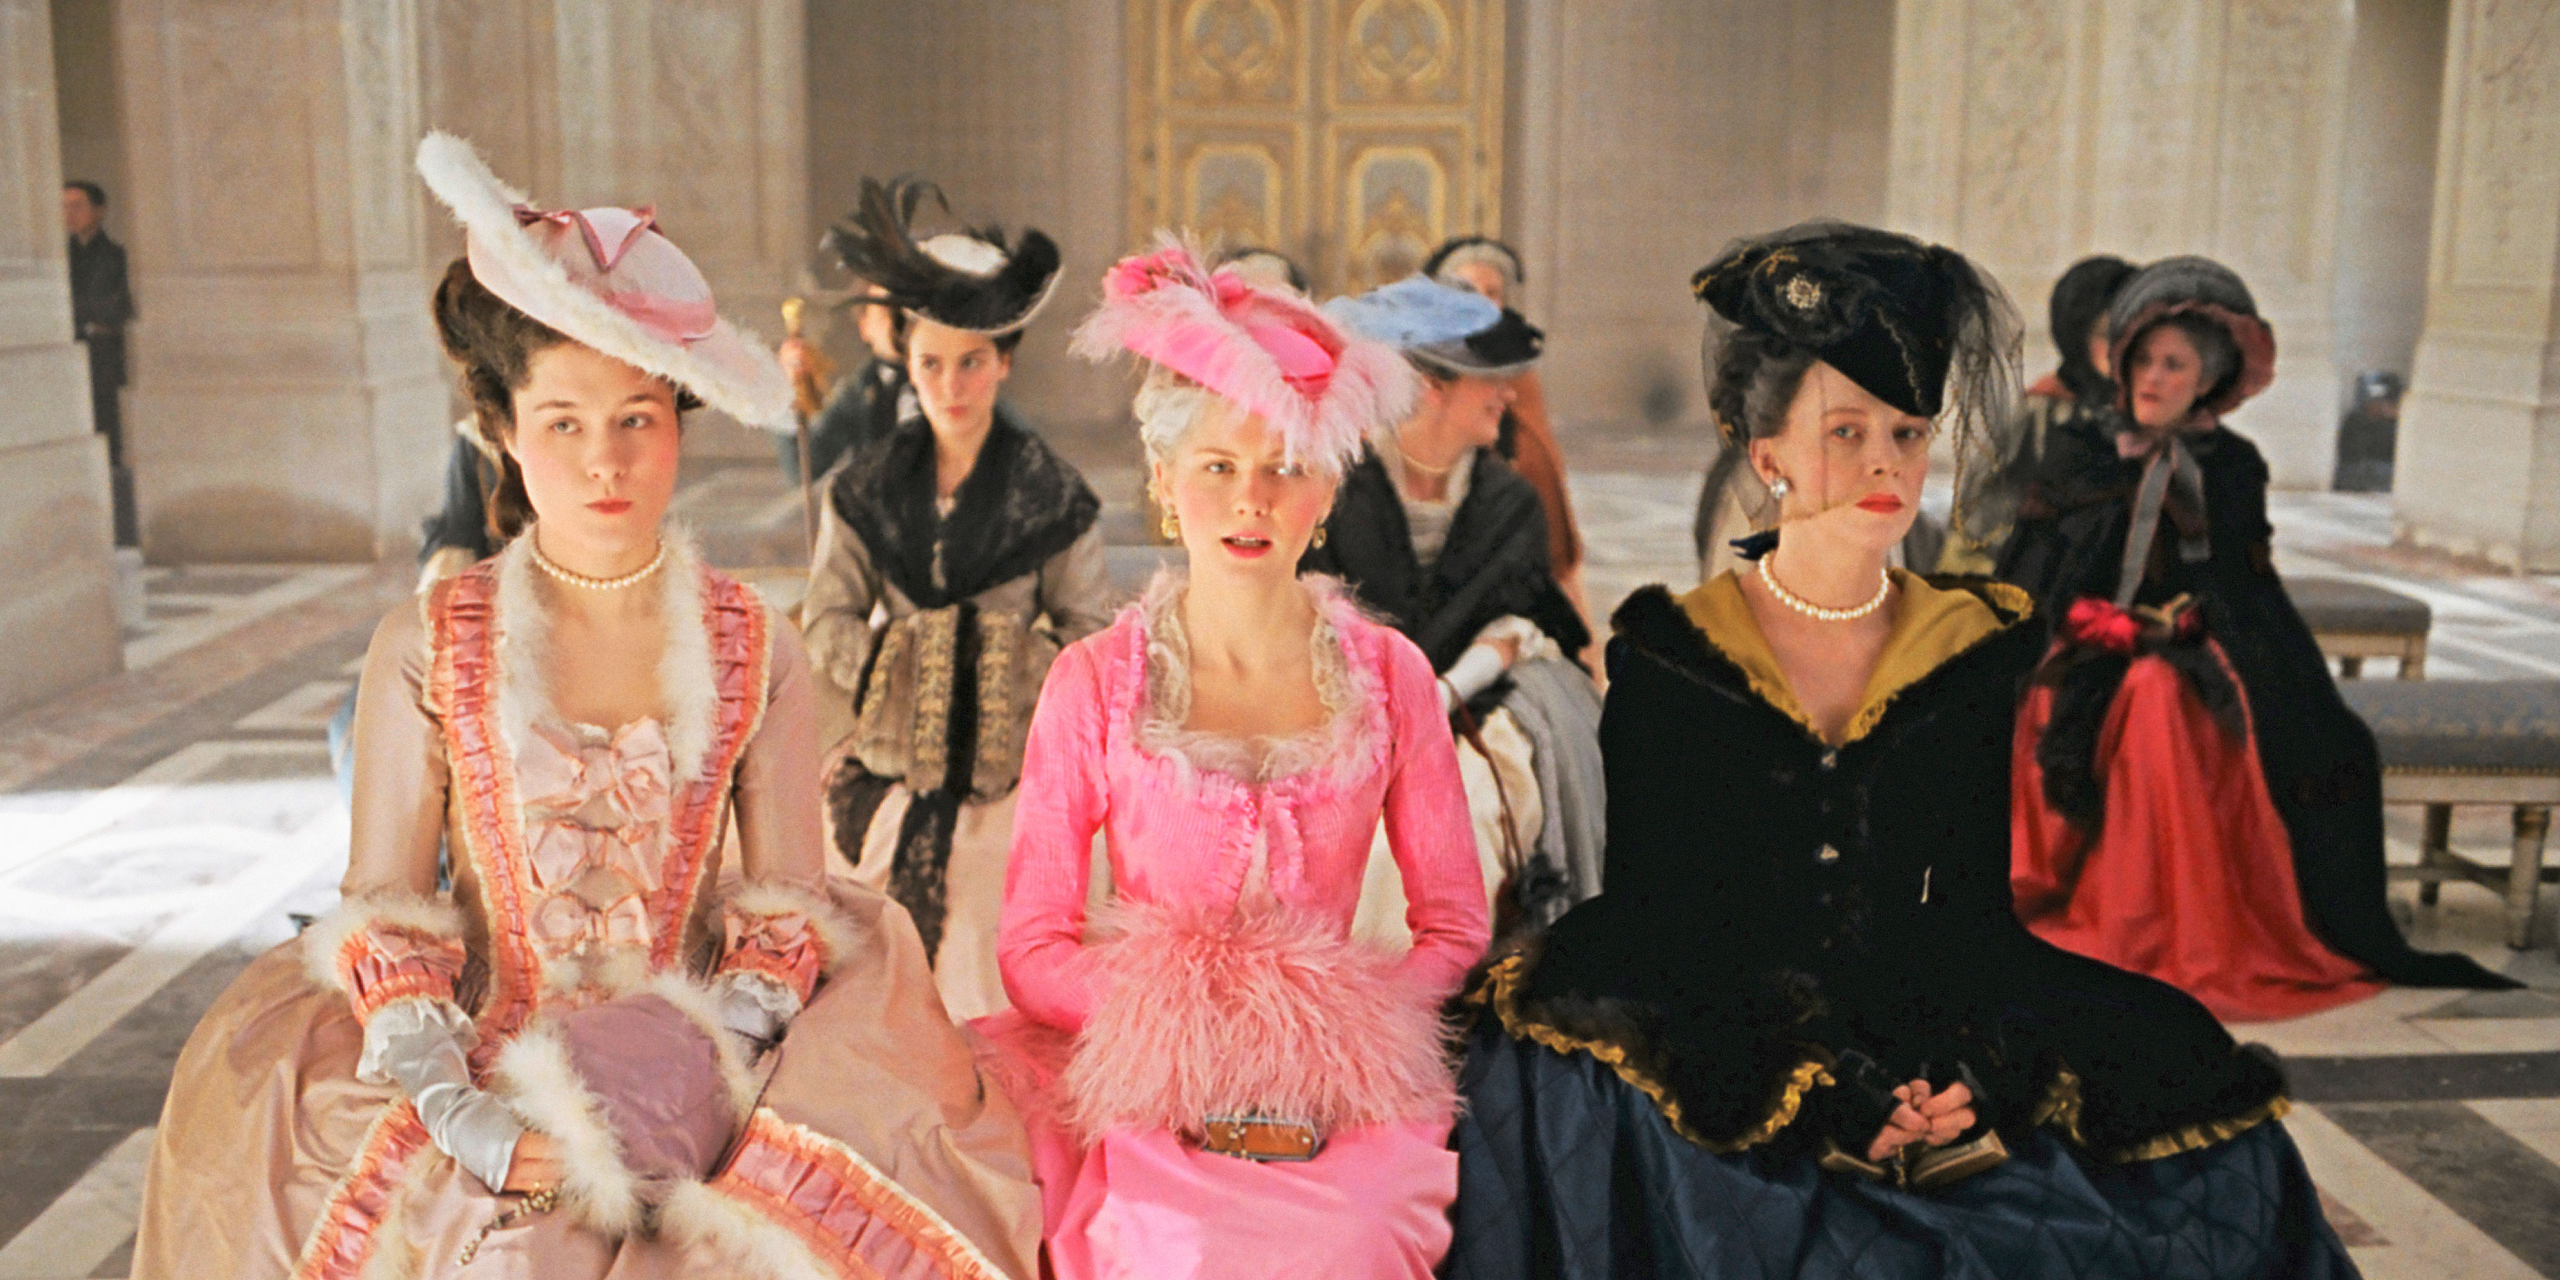 Mary Nighy, Kirsten Dunst and Judy Davis in Marie Antoinette, directed by Sofia Coppola